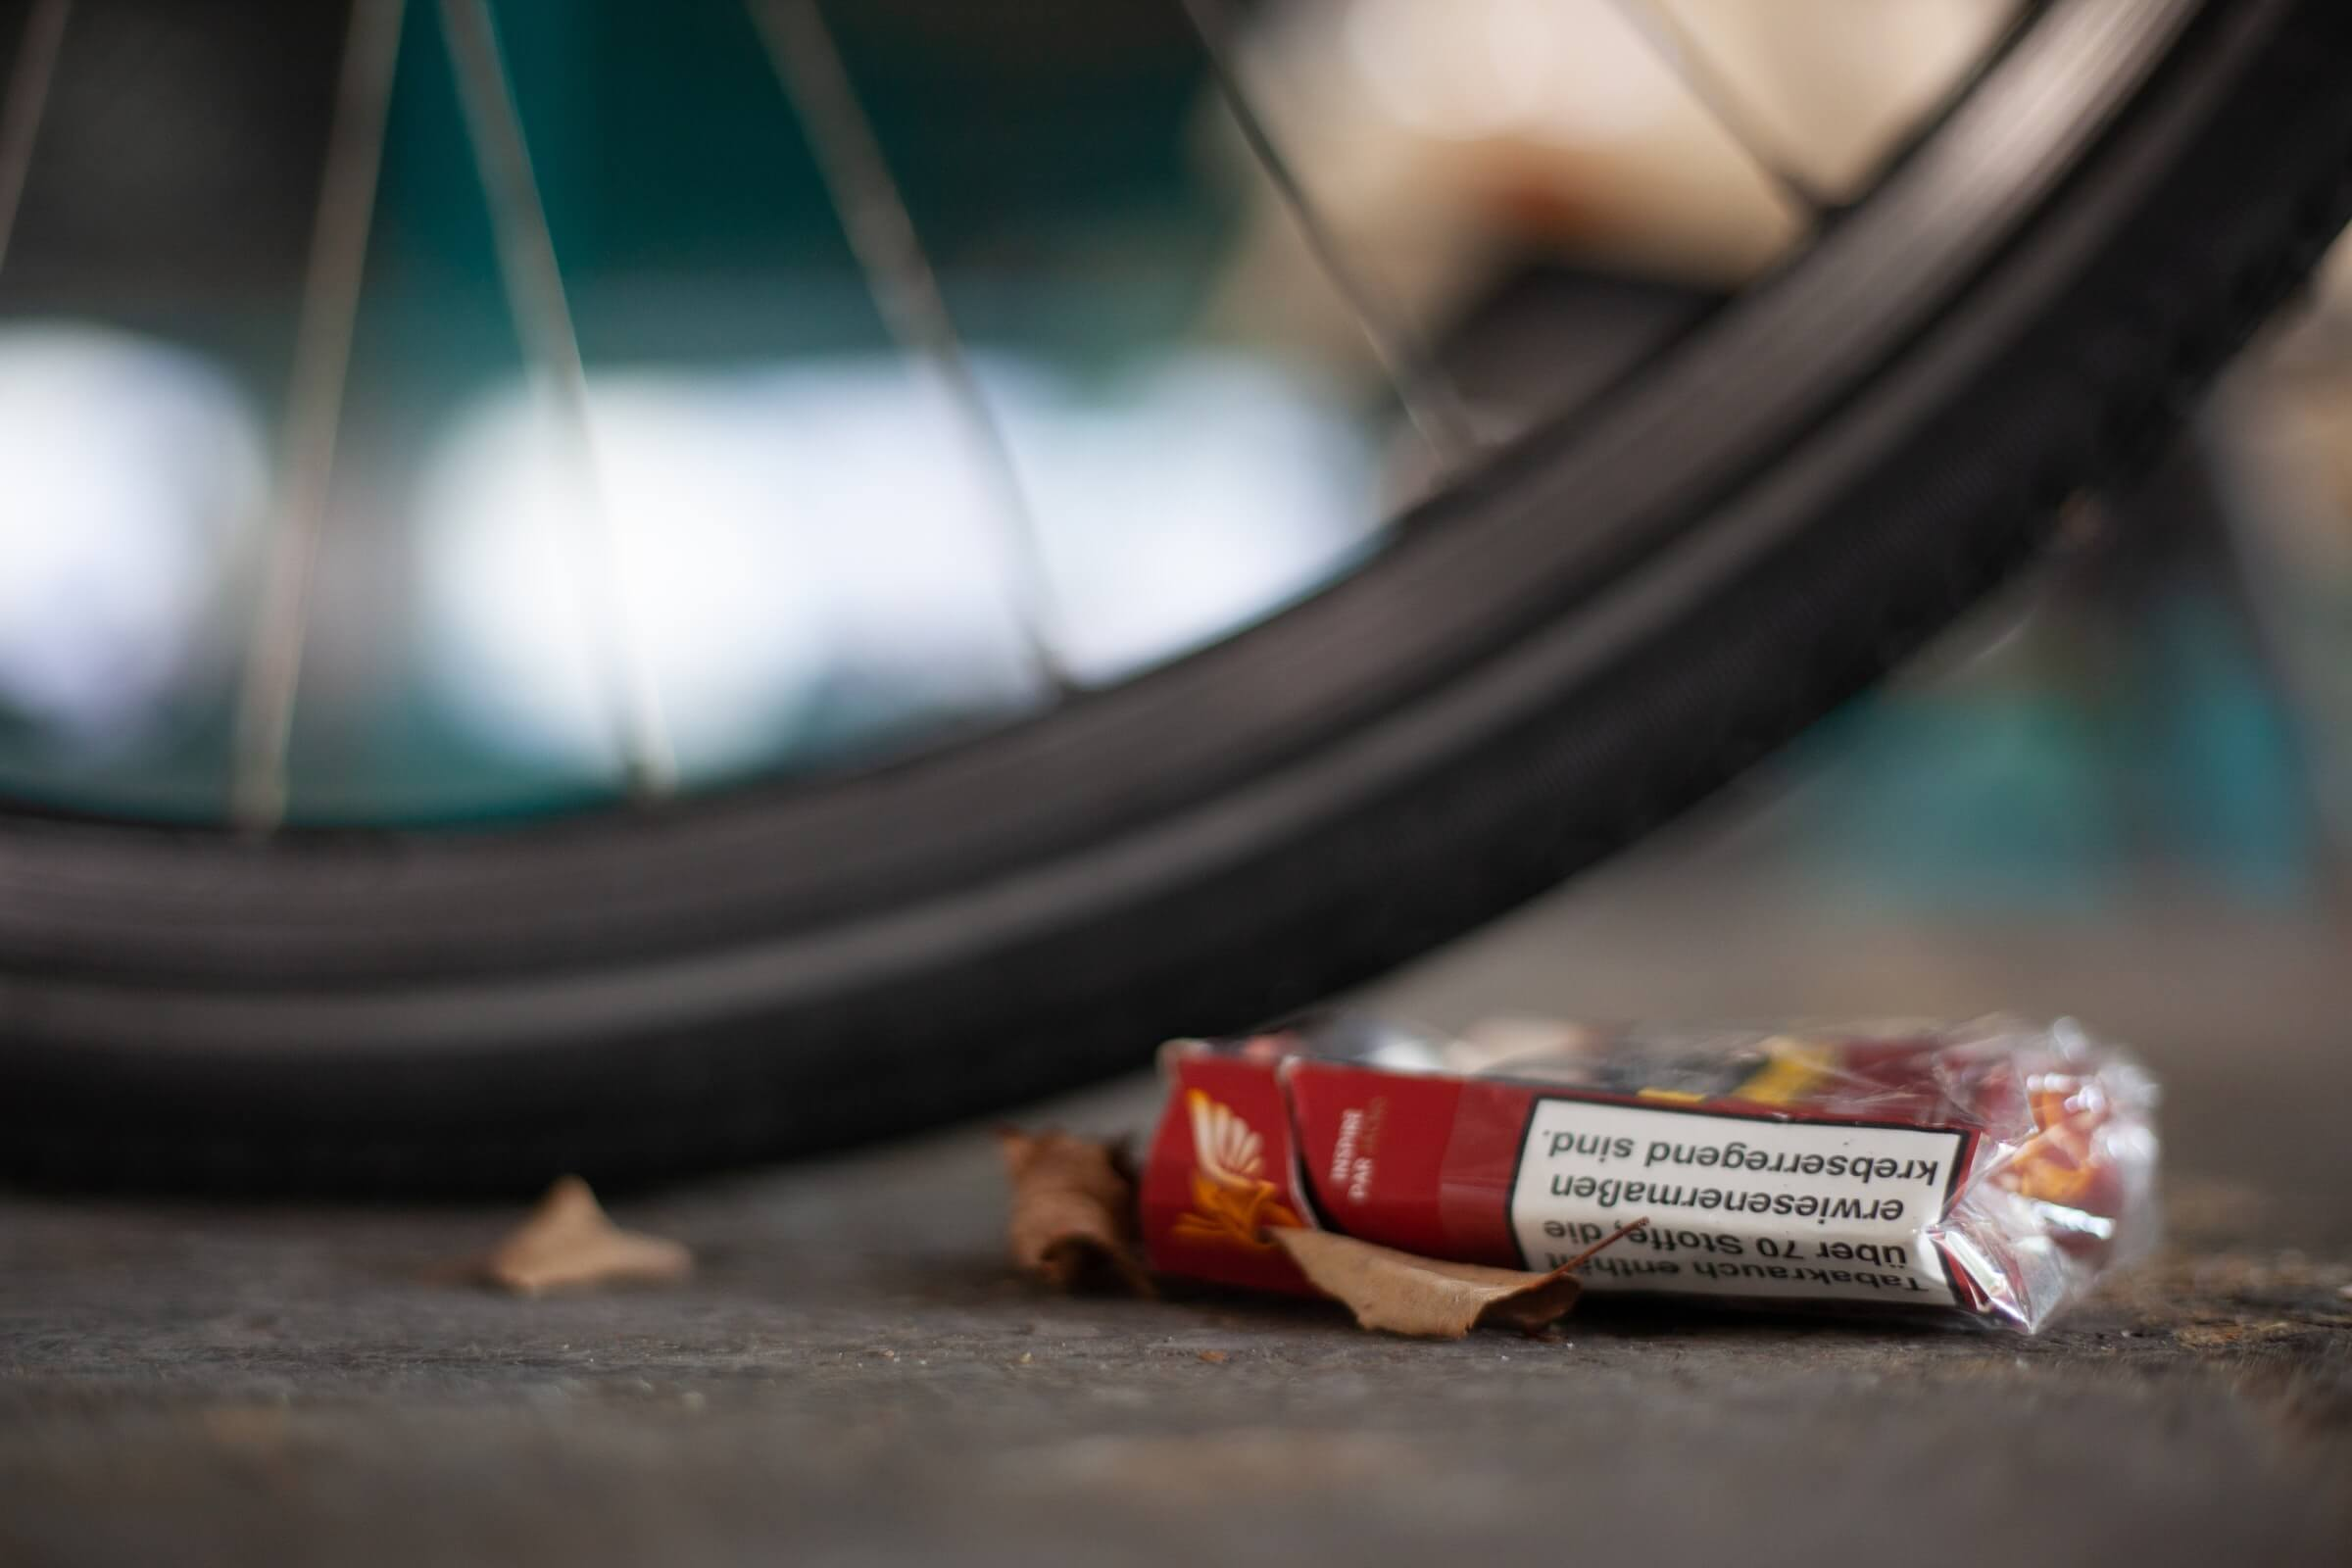 Box of cigarettes under a bicycle tire